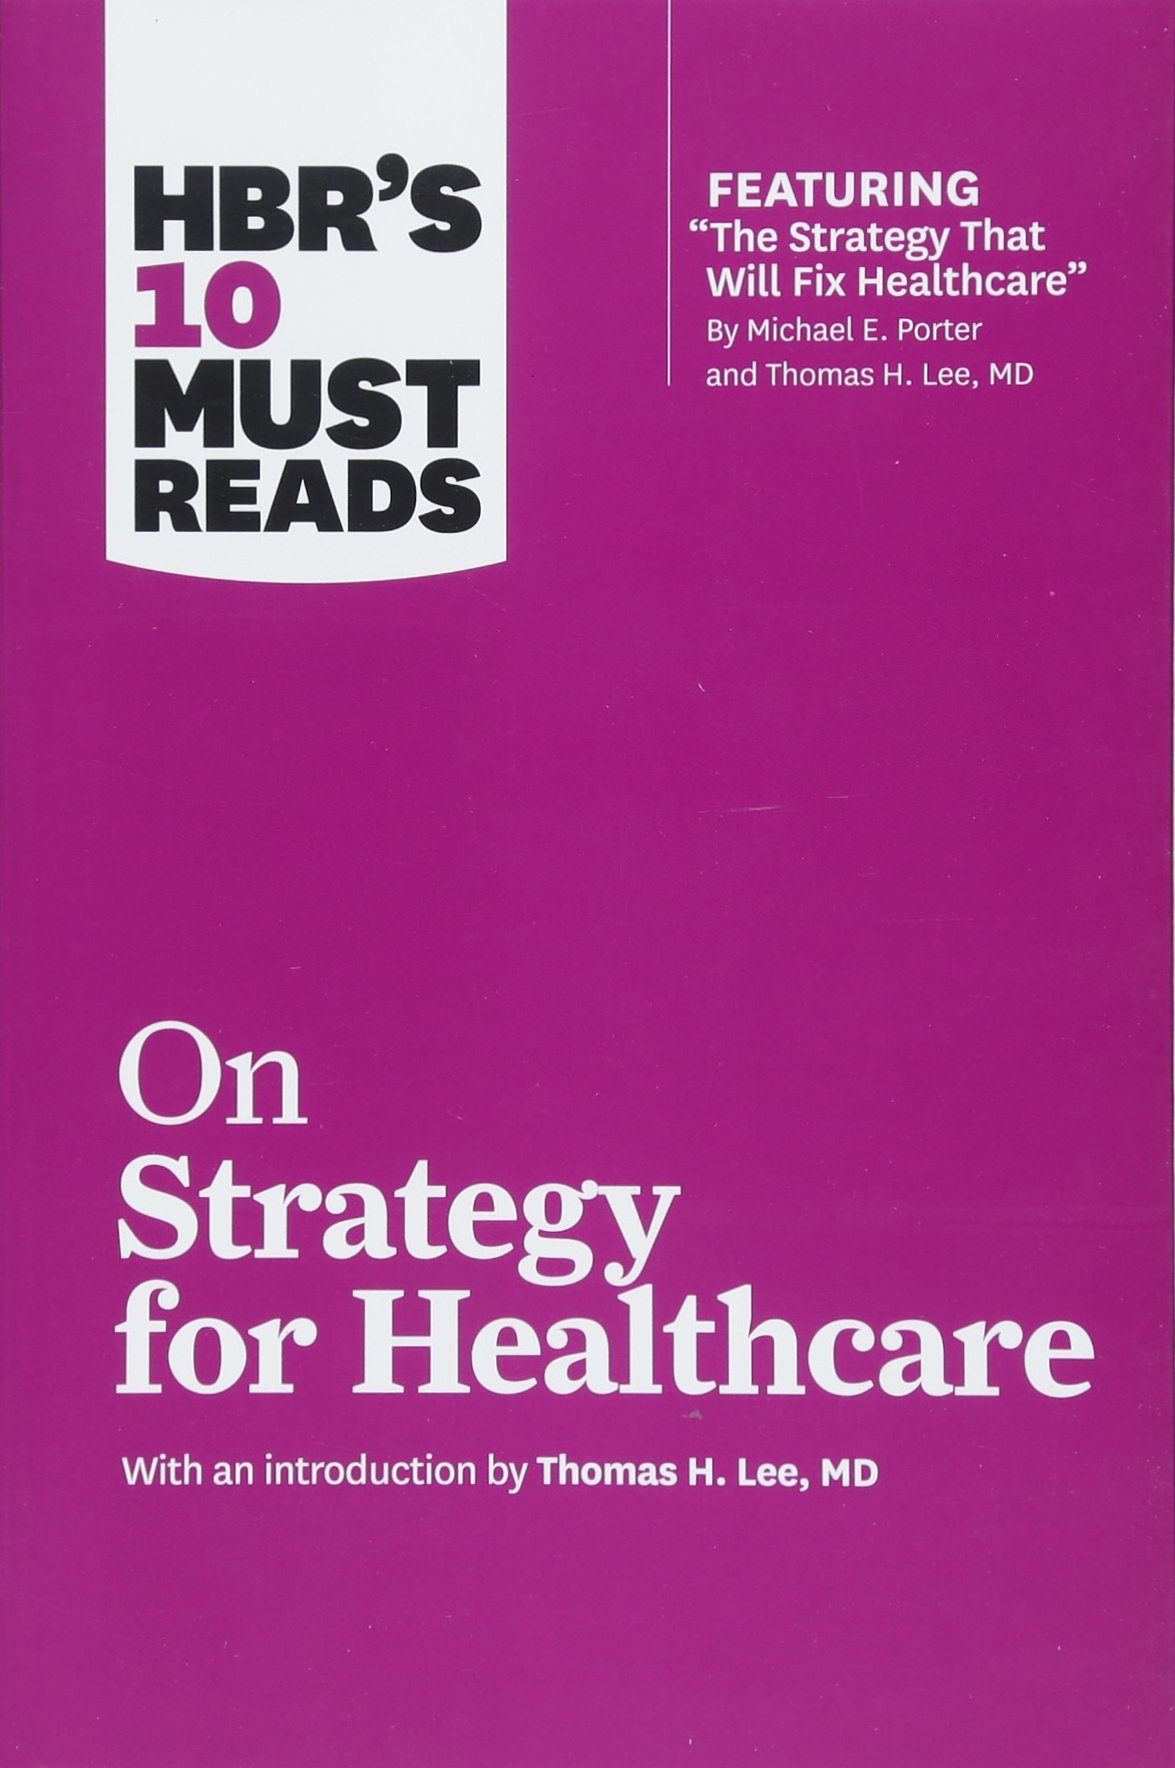 Read Online HBR's 10 Must Reads on Strategy for Healthcare (featuring articles by Michael E. Porter and Thomas H. Lee, MD) pdf epub